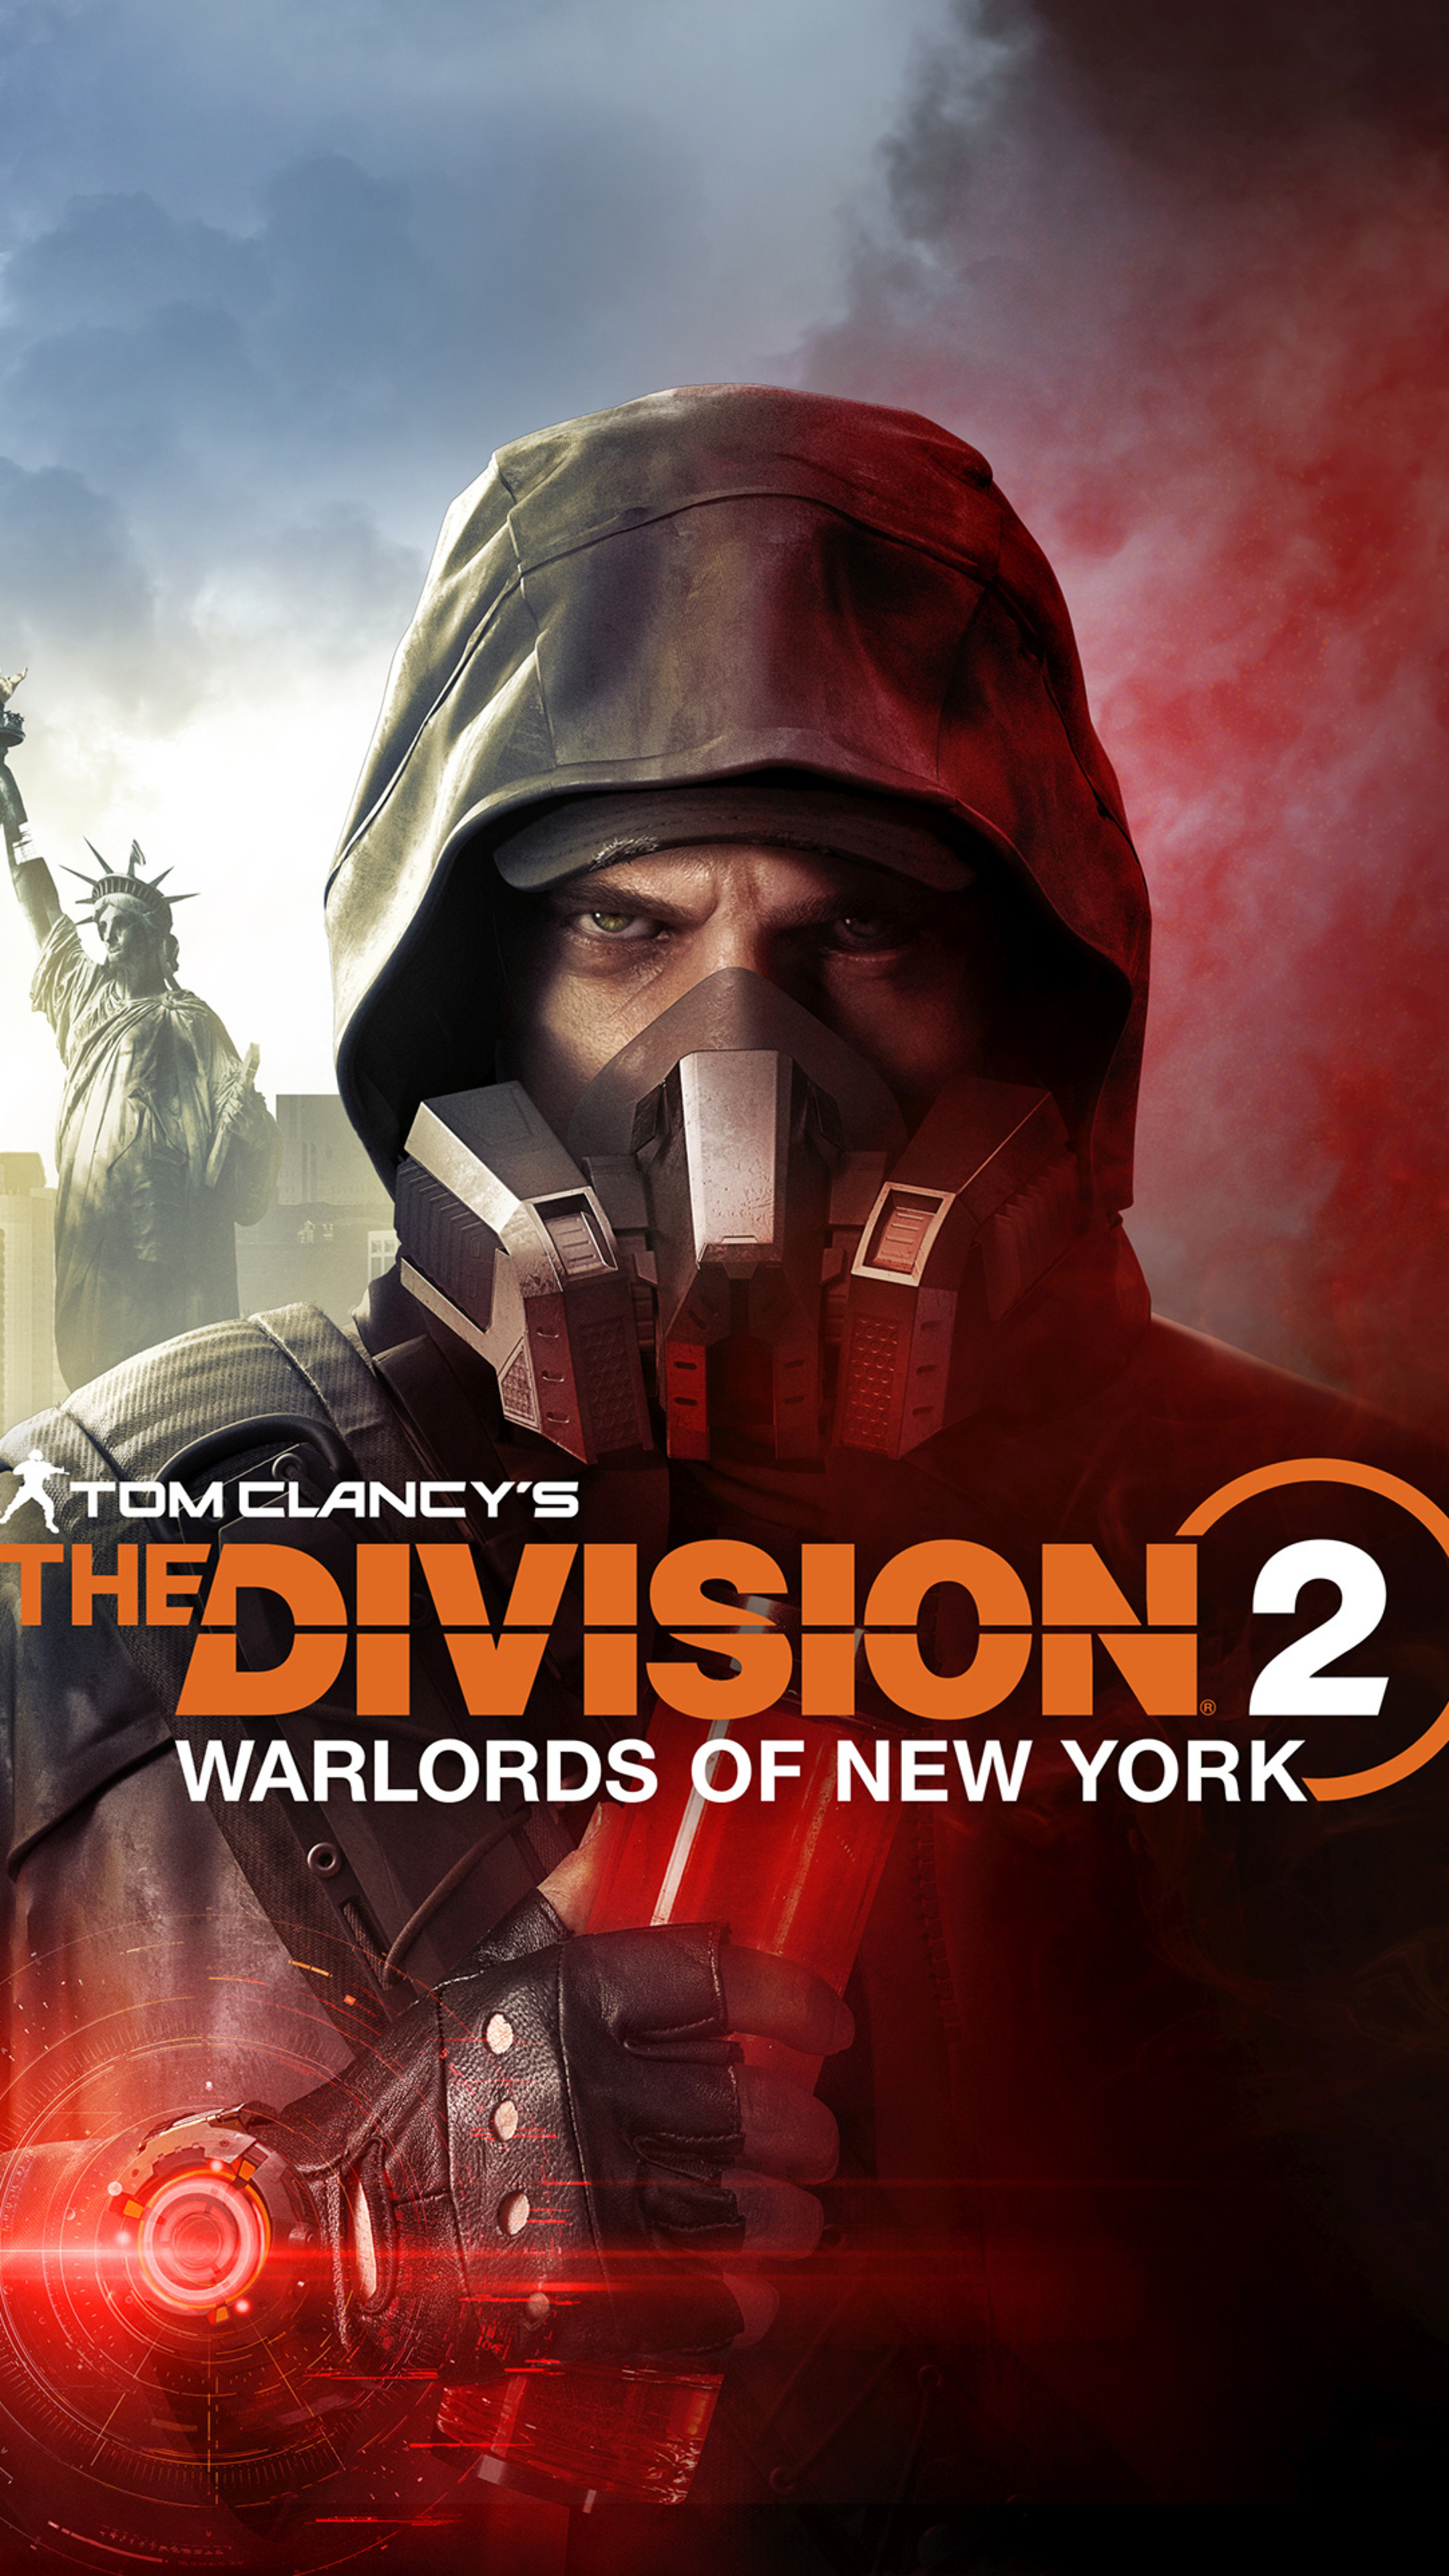 tom-clancys-the-division-2-warlords-of-new-york-v0.jpg